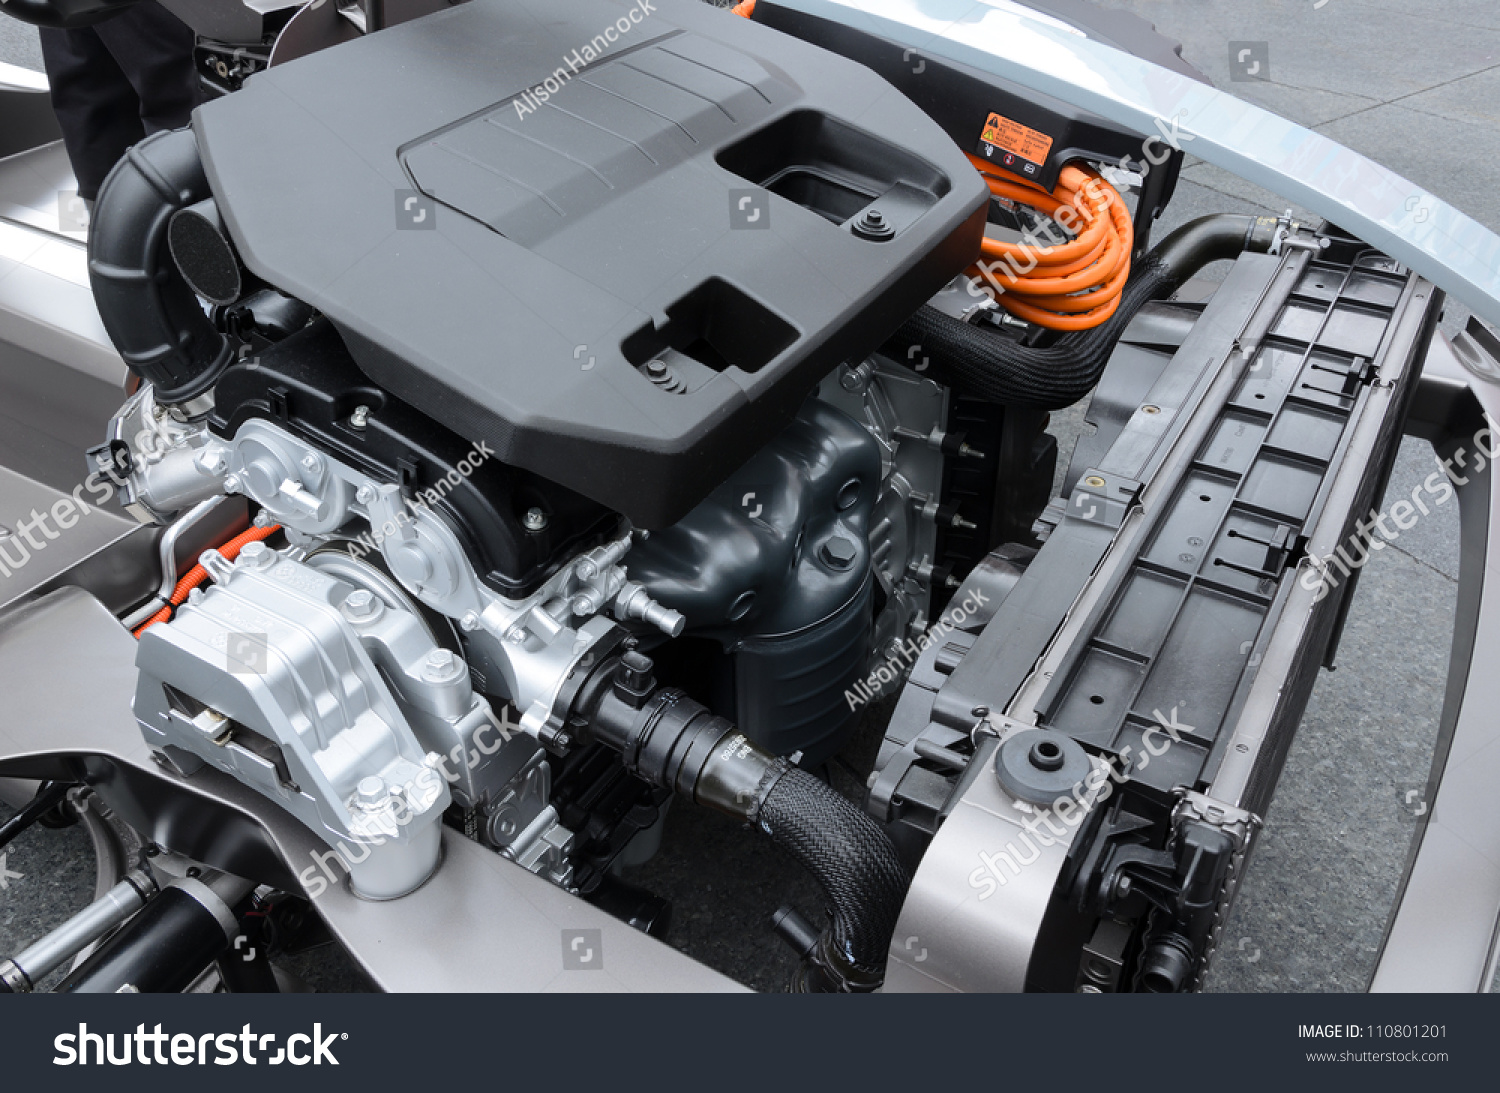 Detail Engine Electric Car Stock Photo (Royalty Free) 110801201 ...